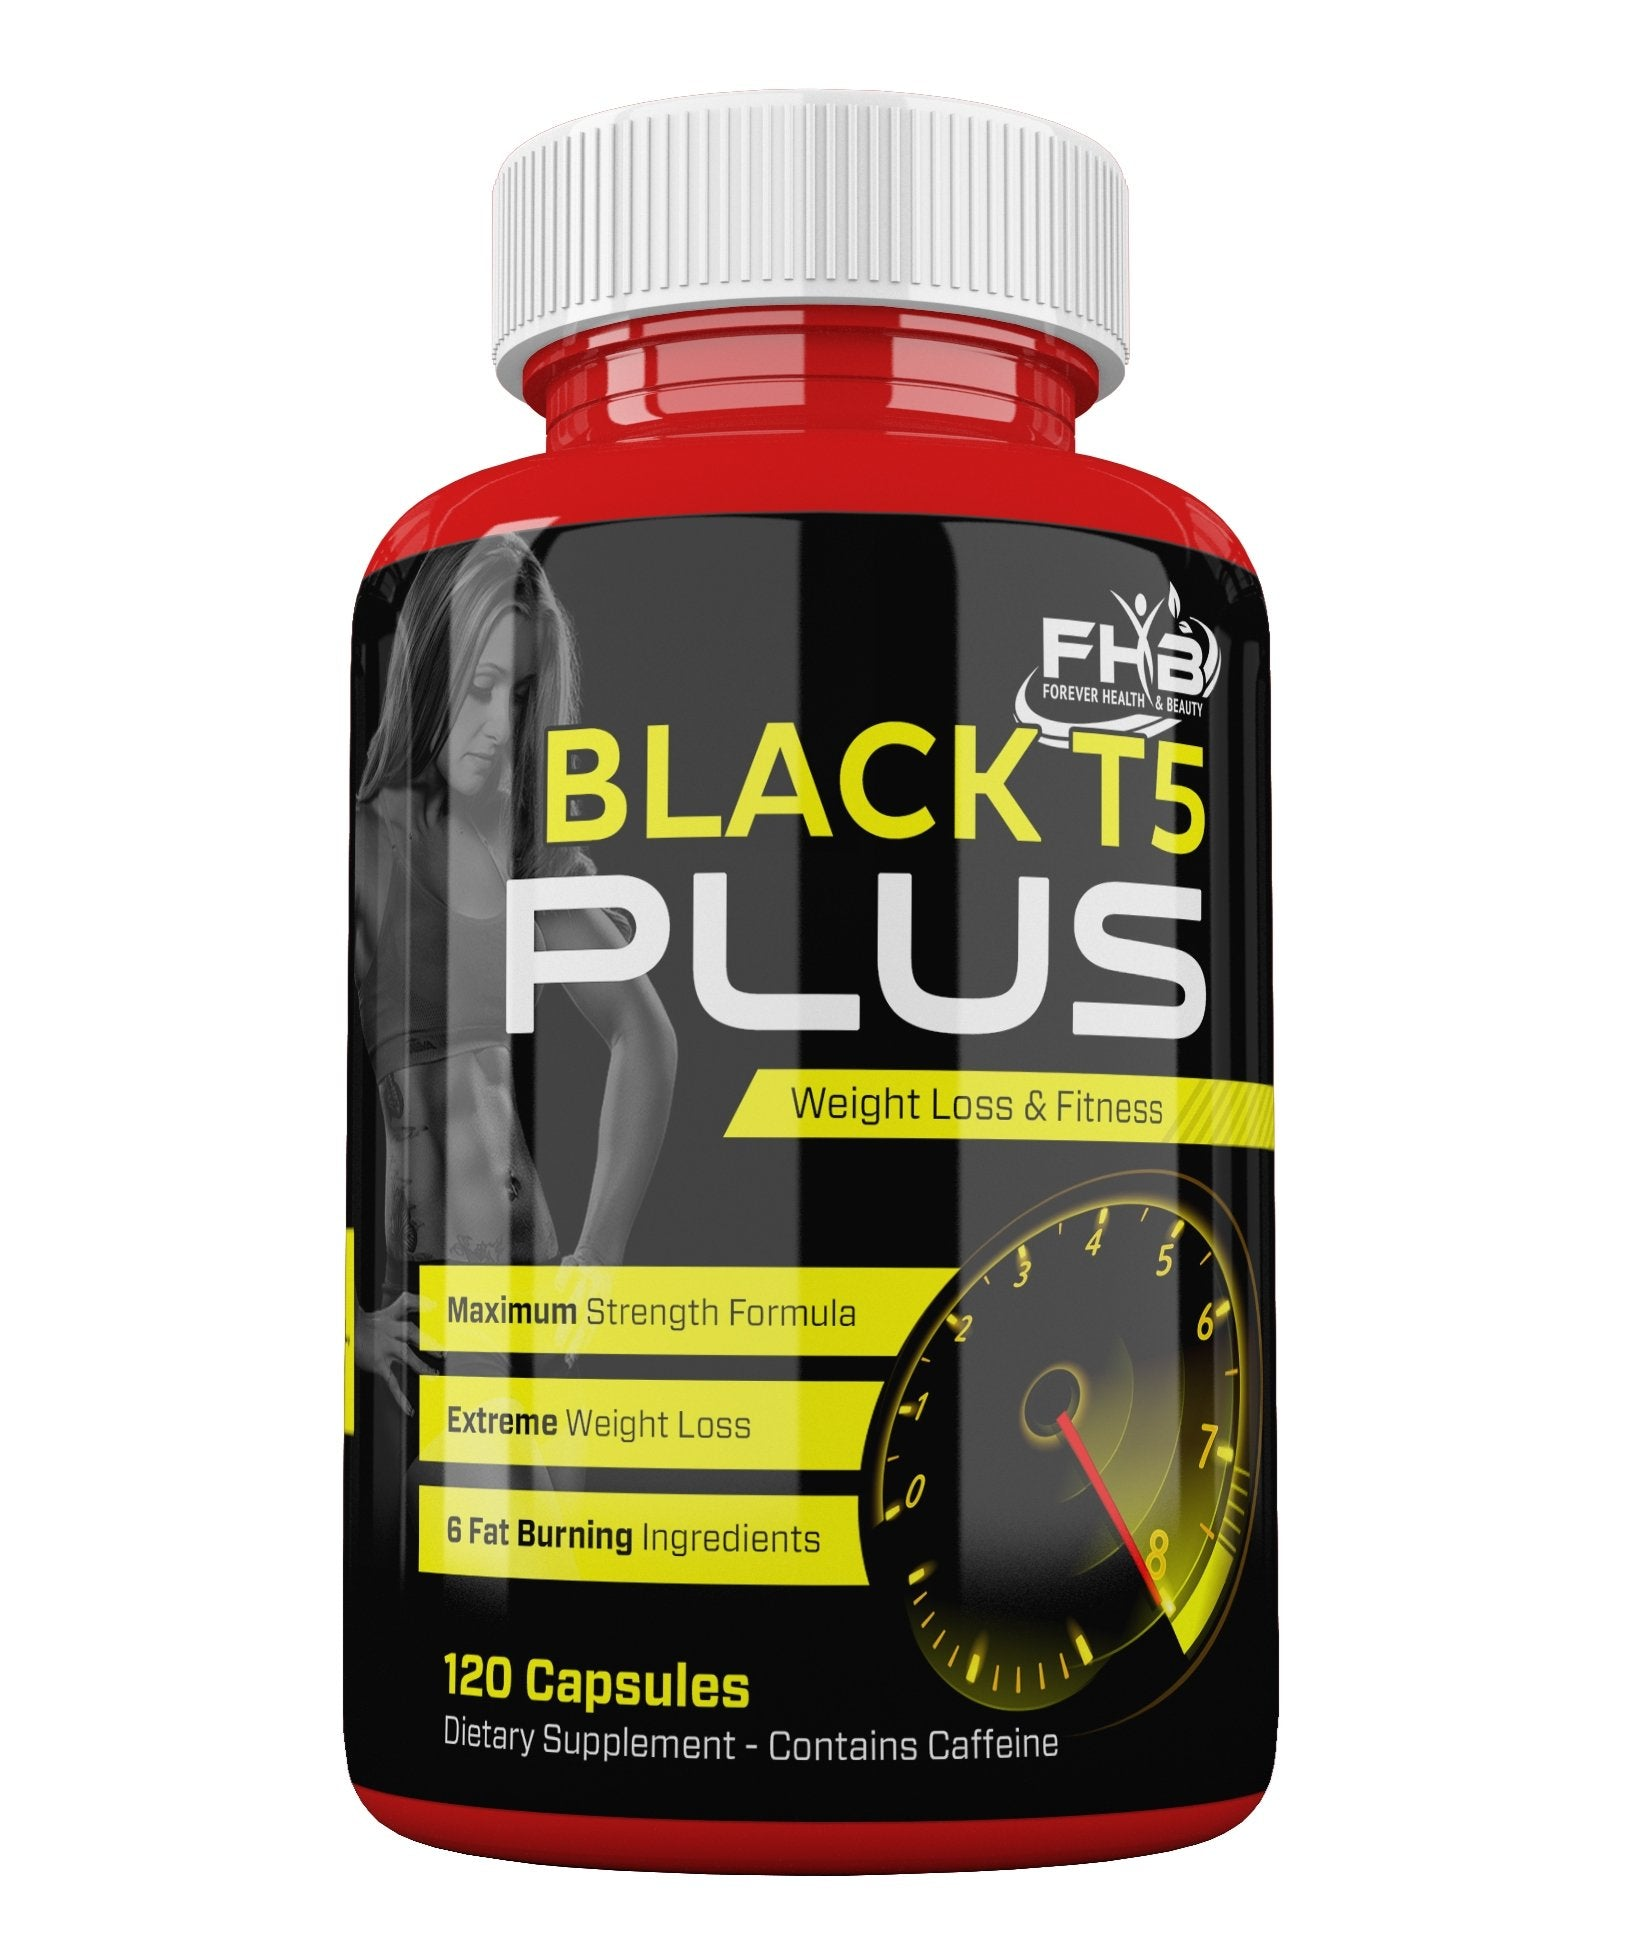 Black T5 Plus Weight Loss & Fitness Maximum Strength Formula - 120 Capsules